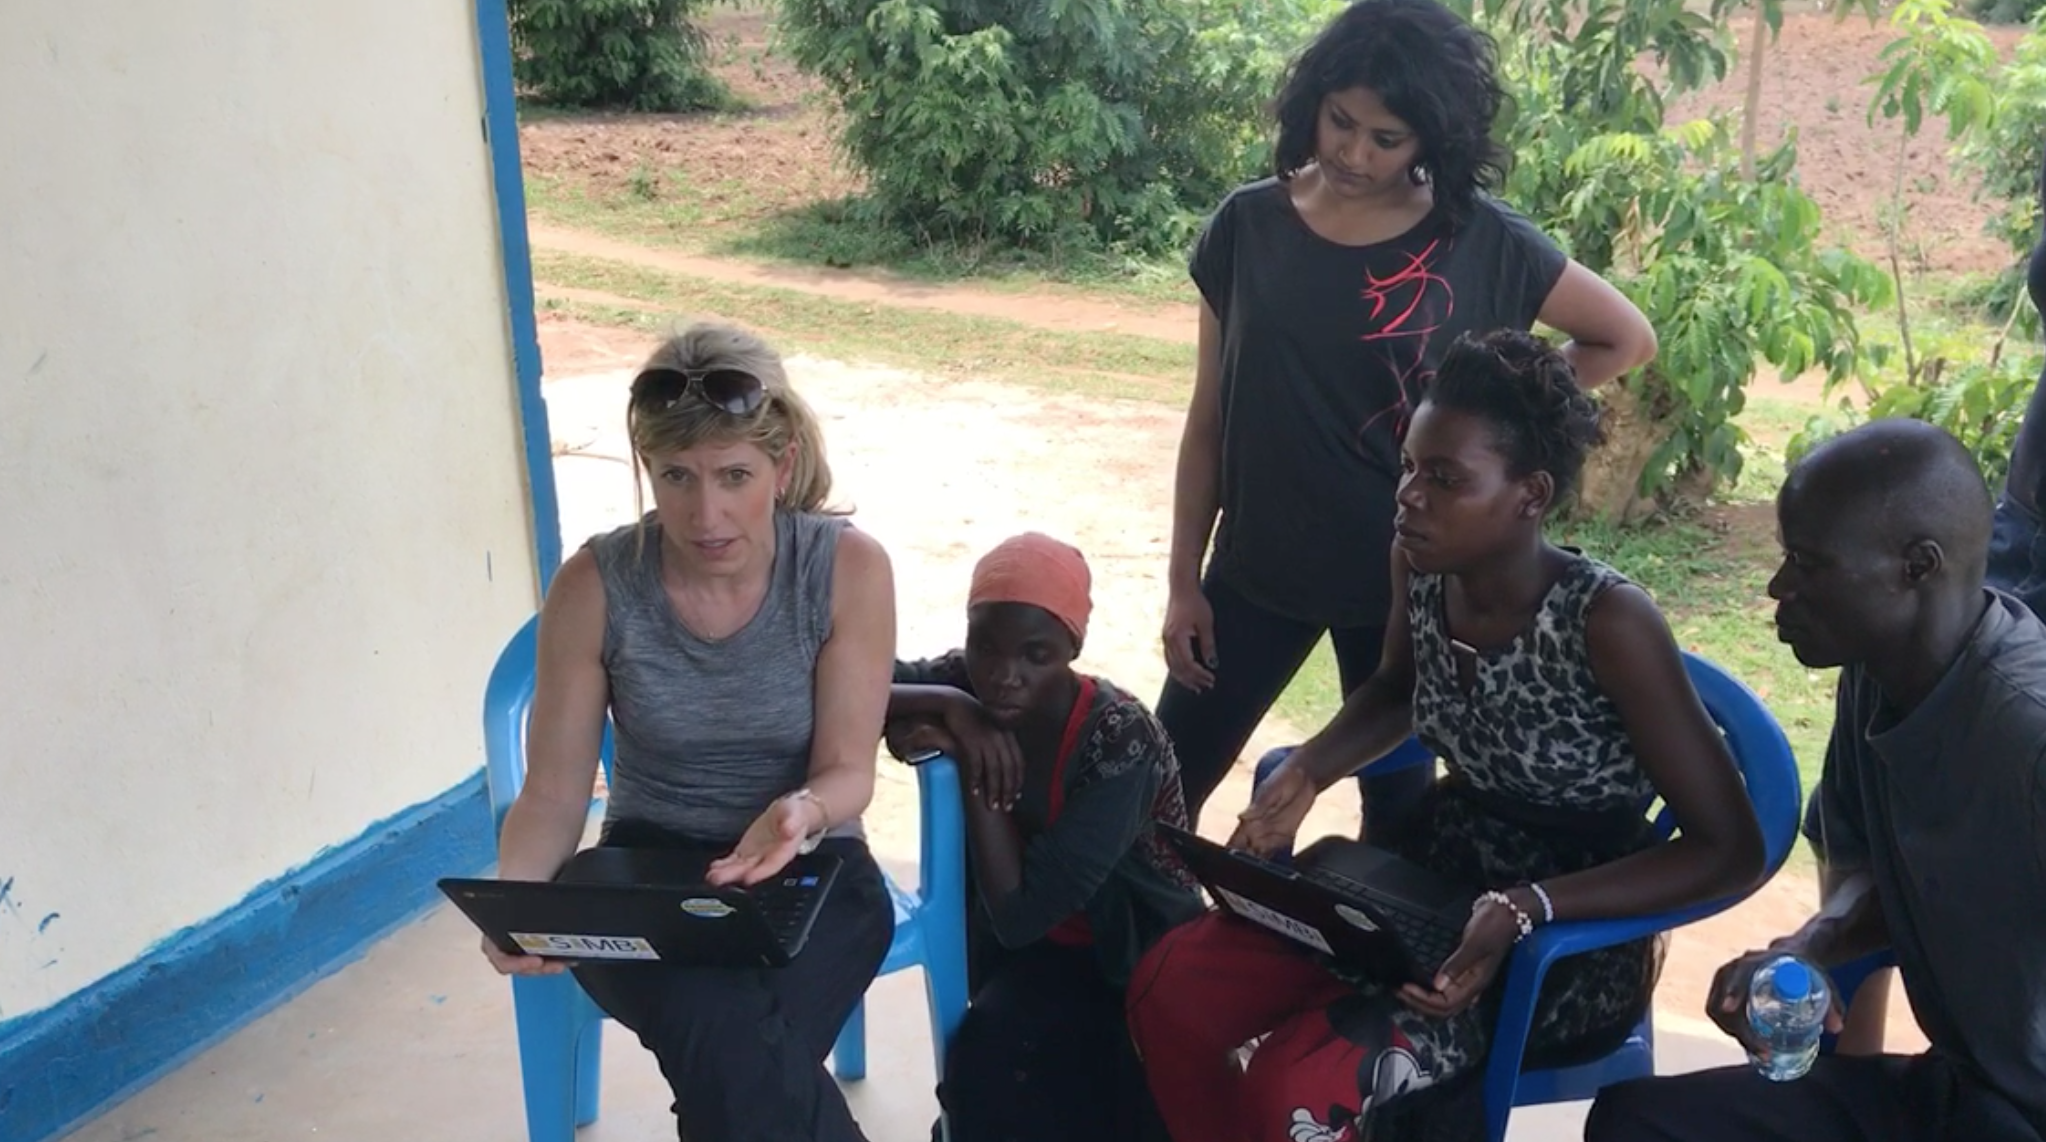 Nicole teaching teachers from Yonatan Netanyahu Memorial School how to use SiMBi - our reading app.